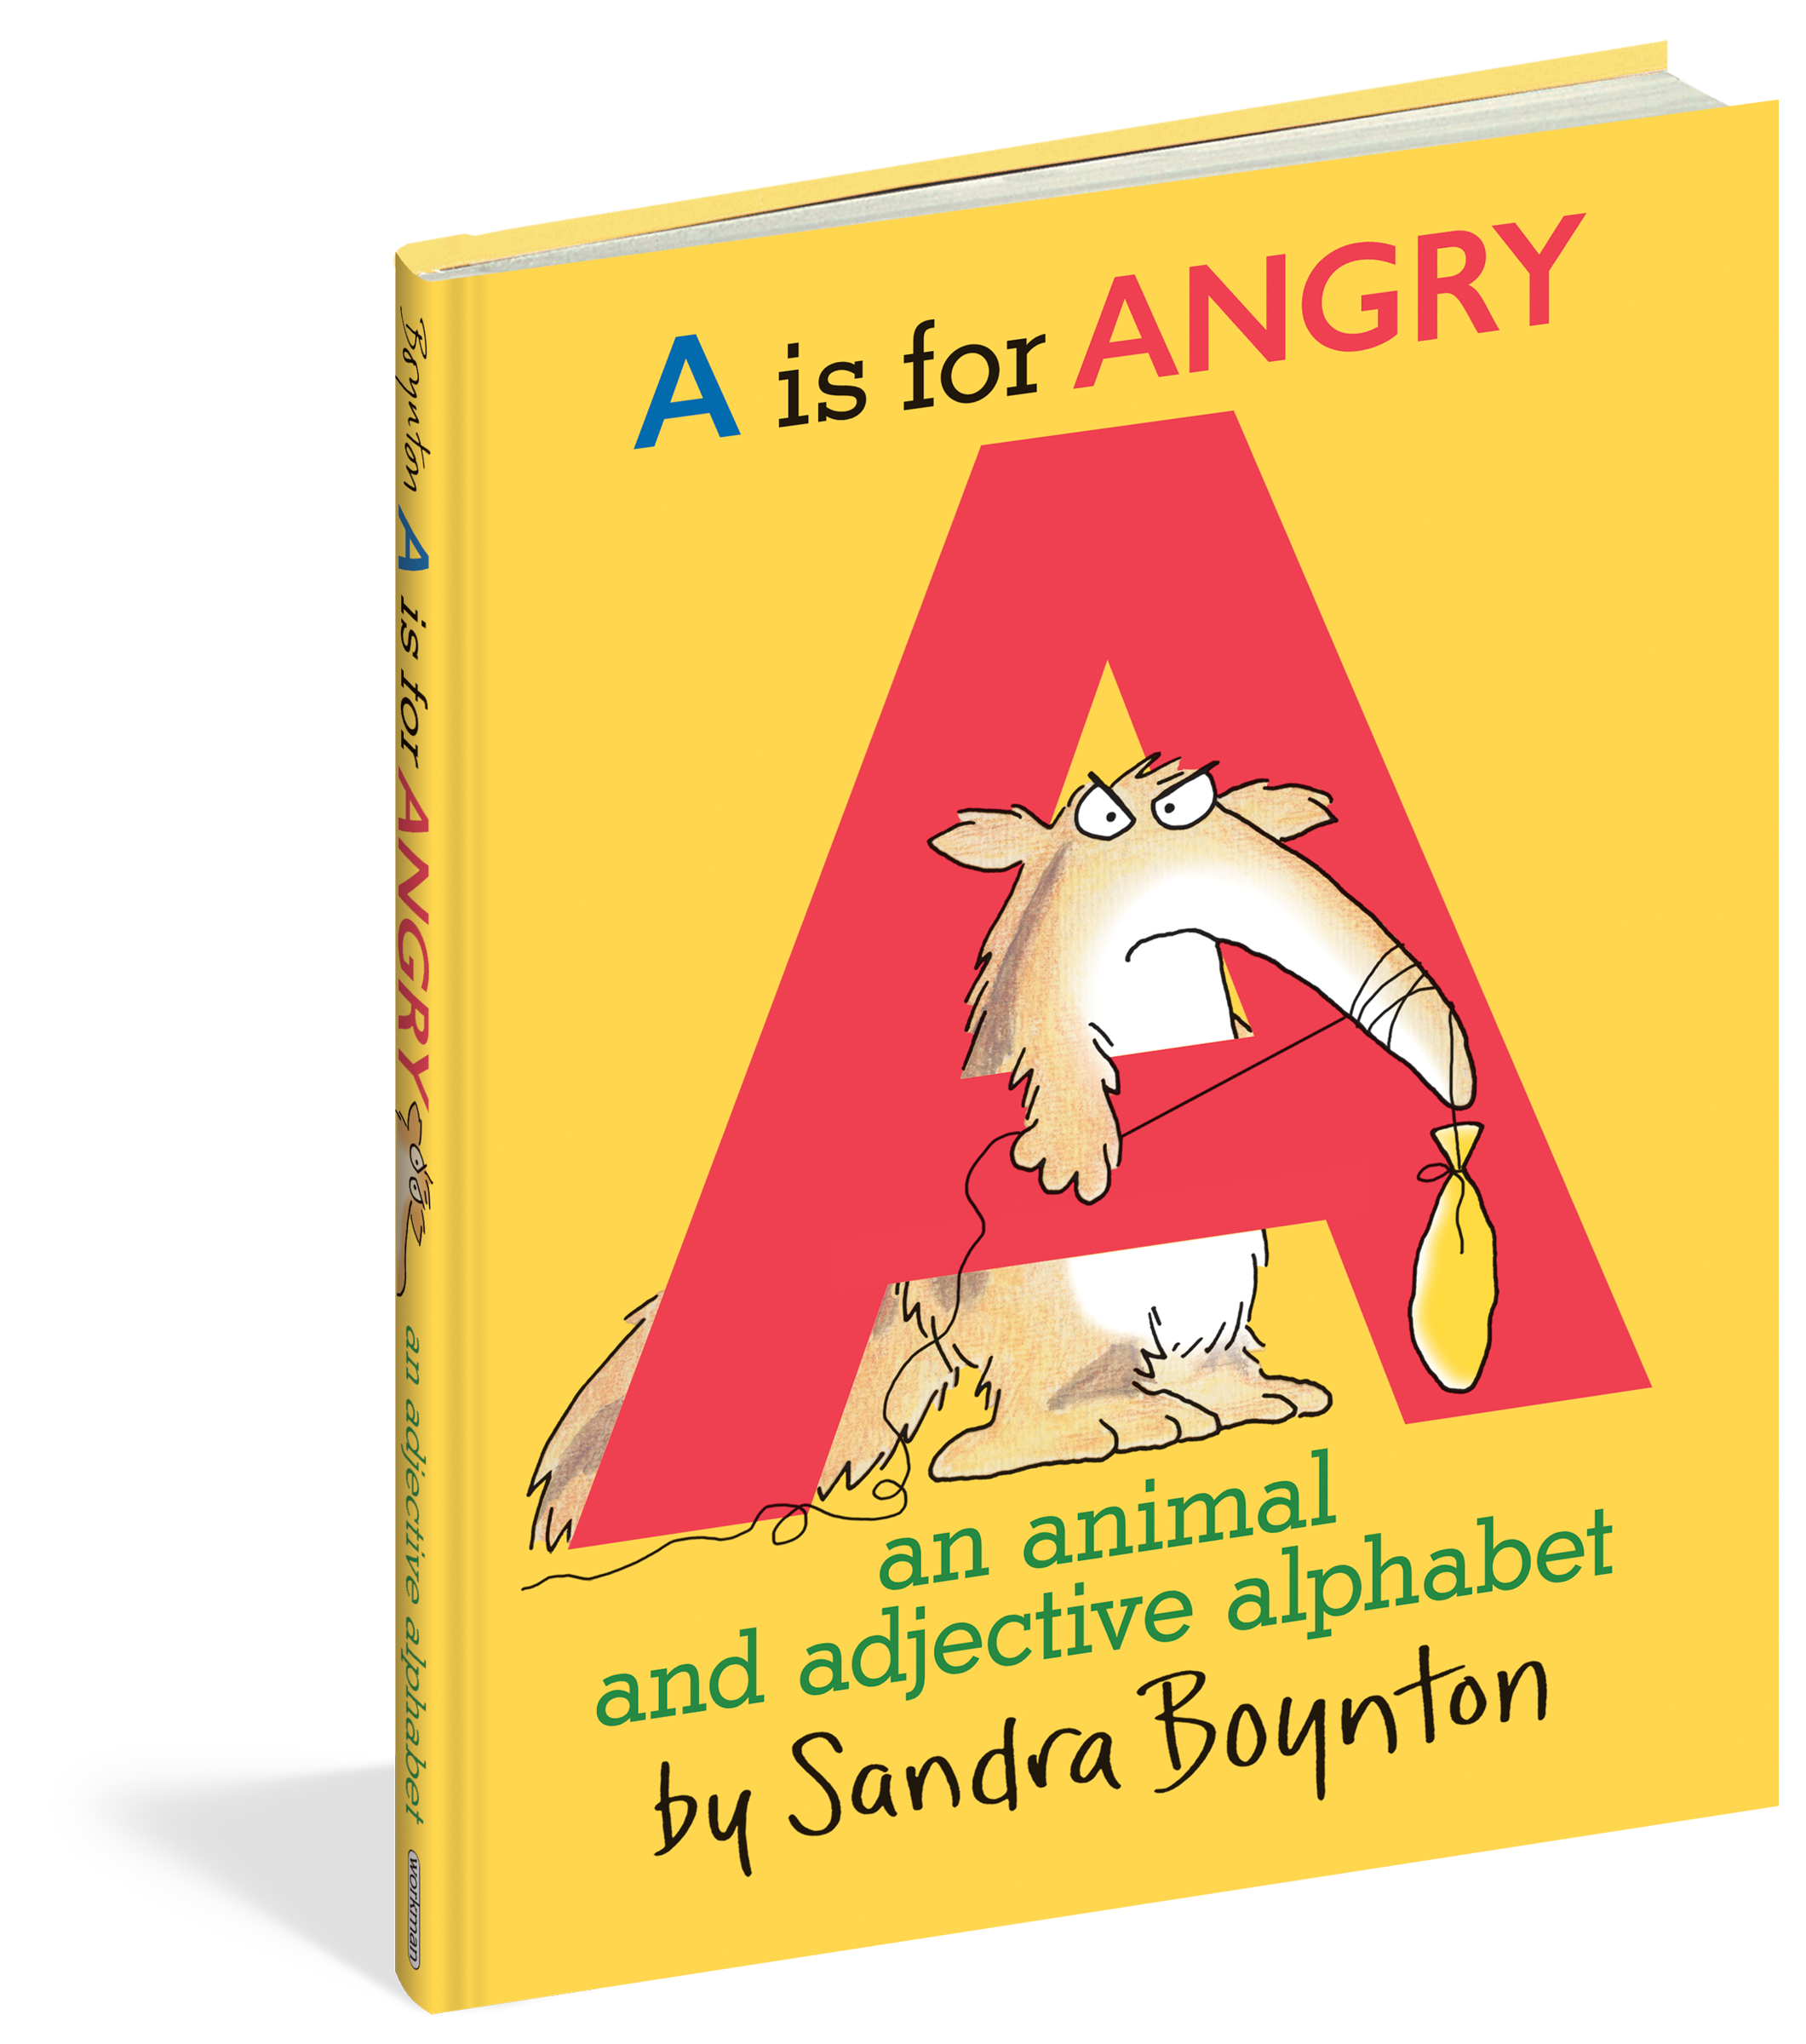 Animal alphabet png. A is for angry